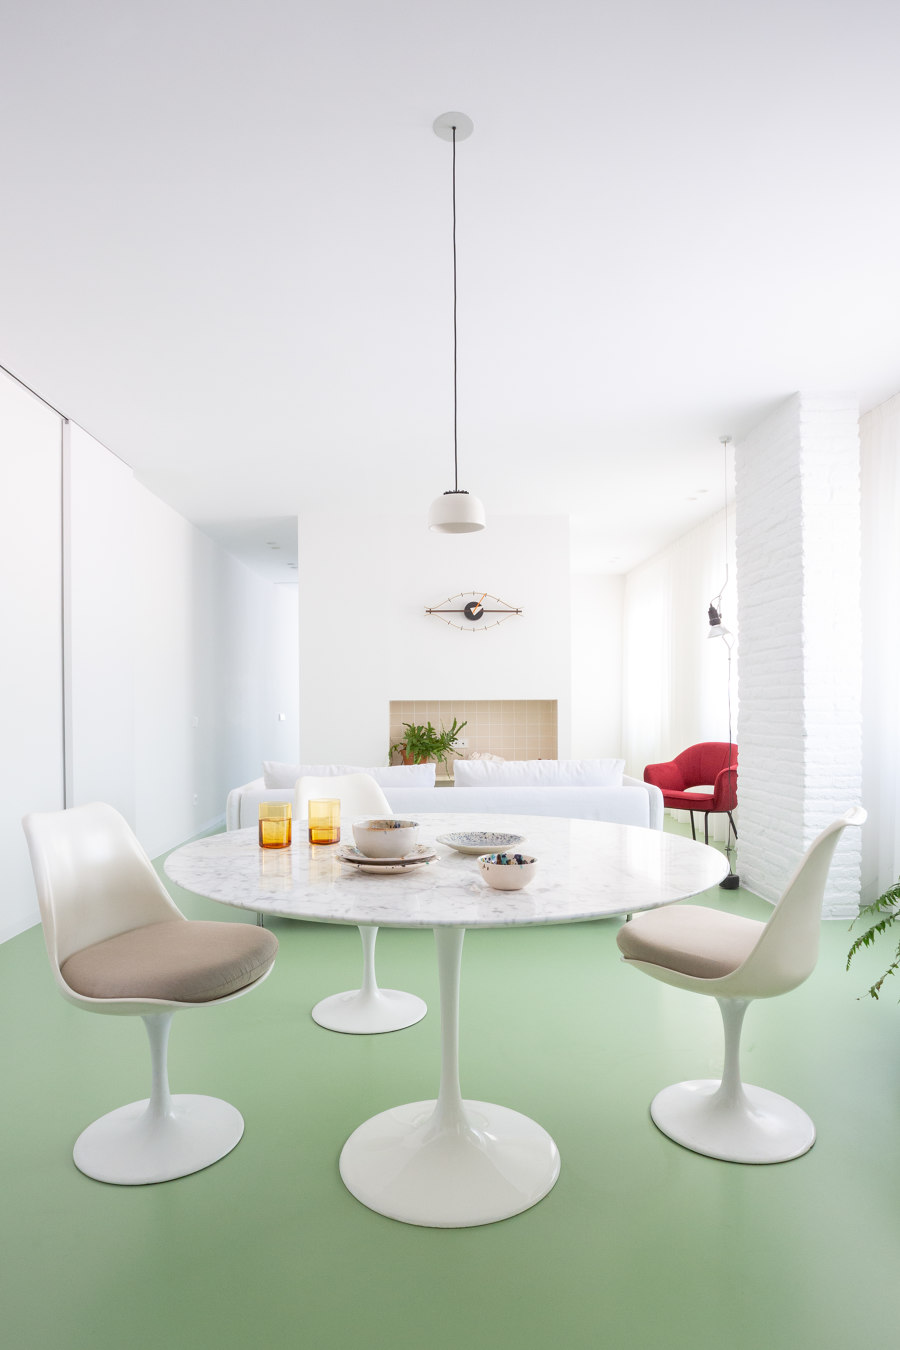 Apartamento Picasso by Nada | Living space